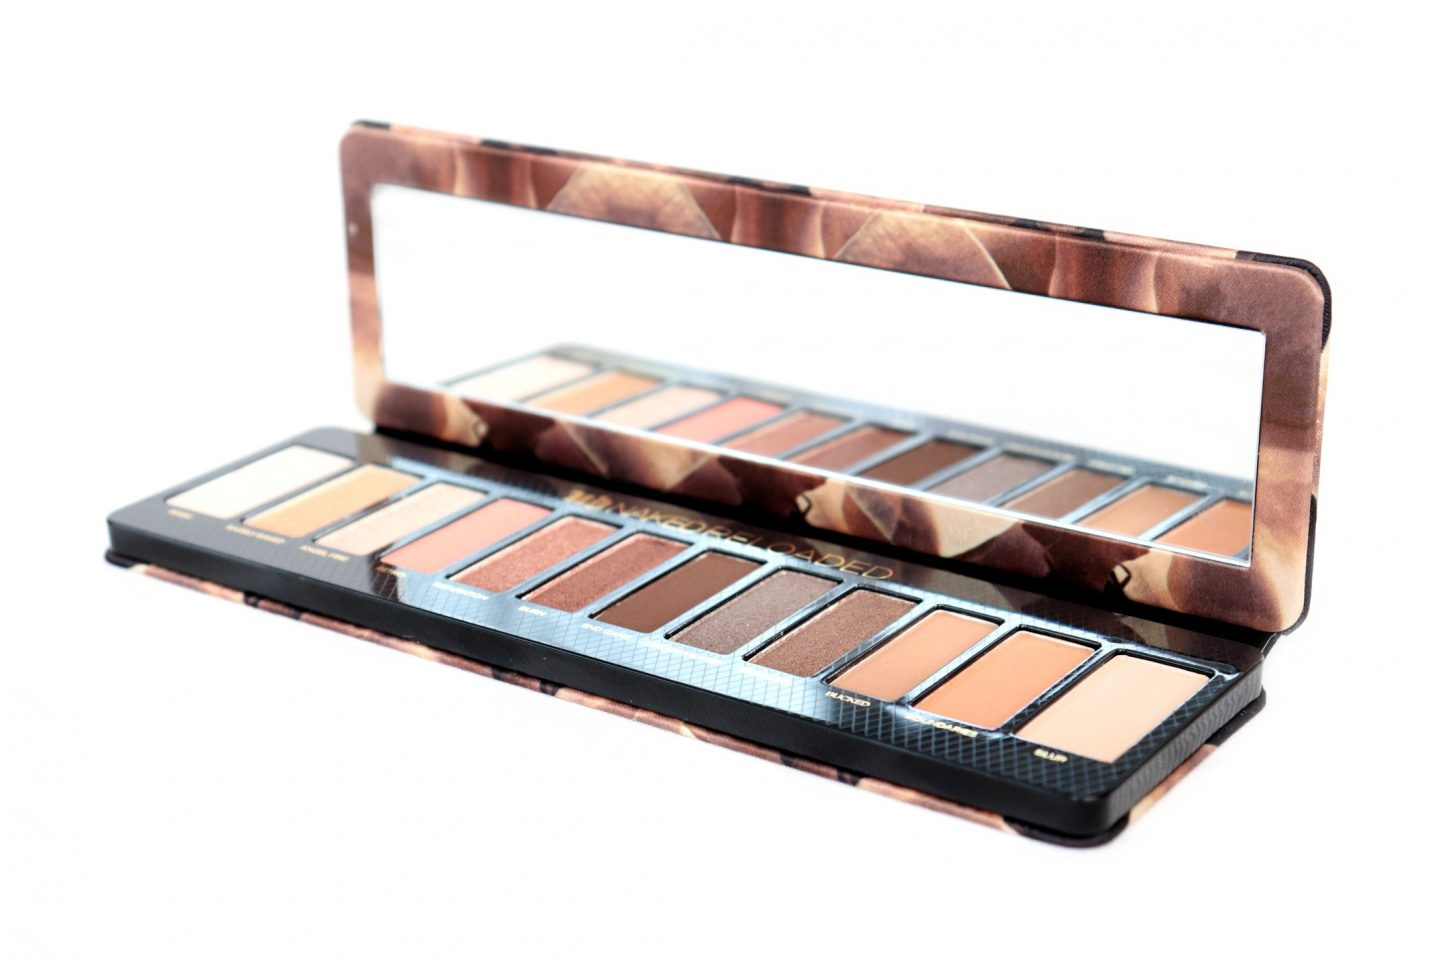 Urban Decay Naked2 Palette Looks - My Eyeshadow Consultant